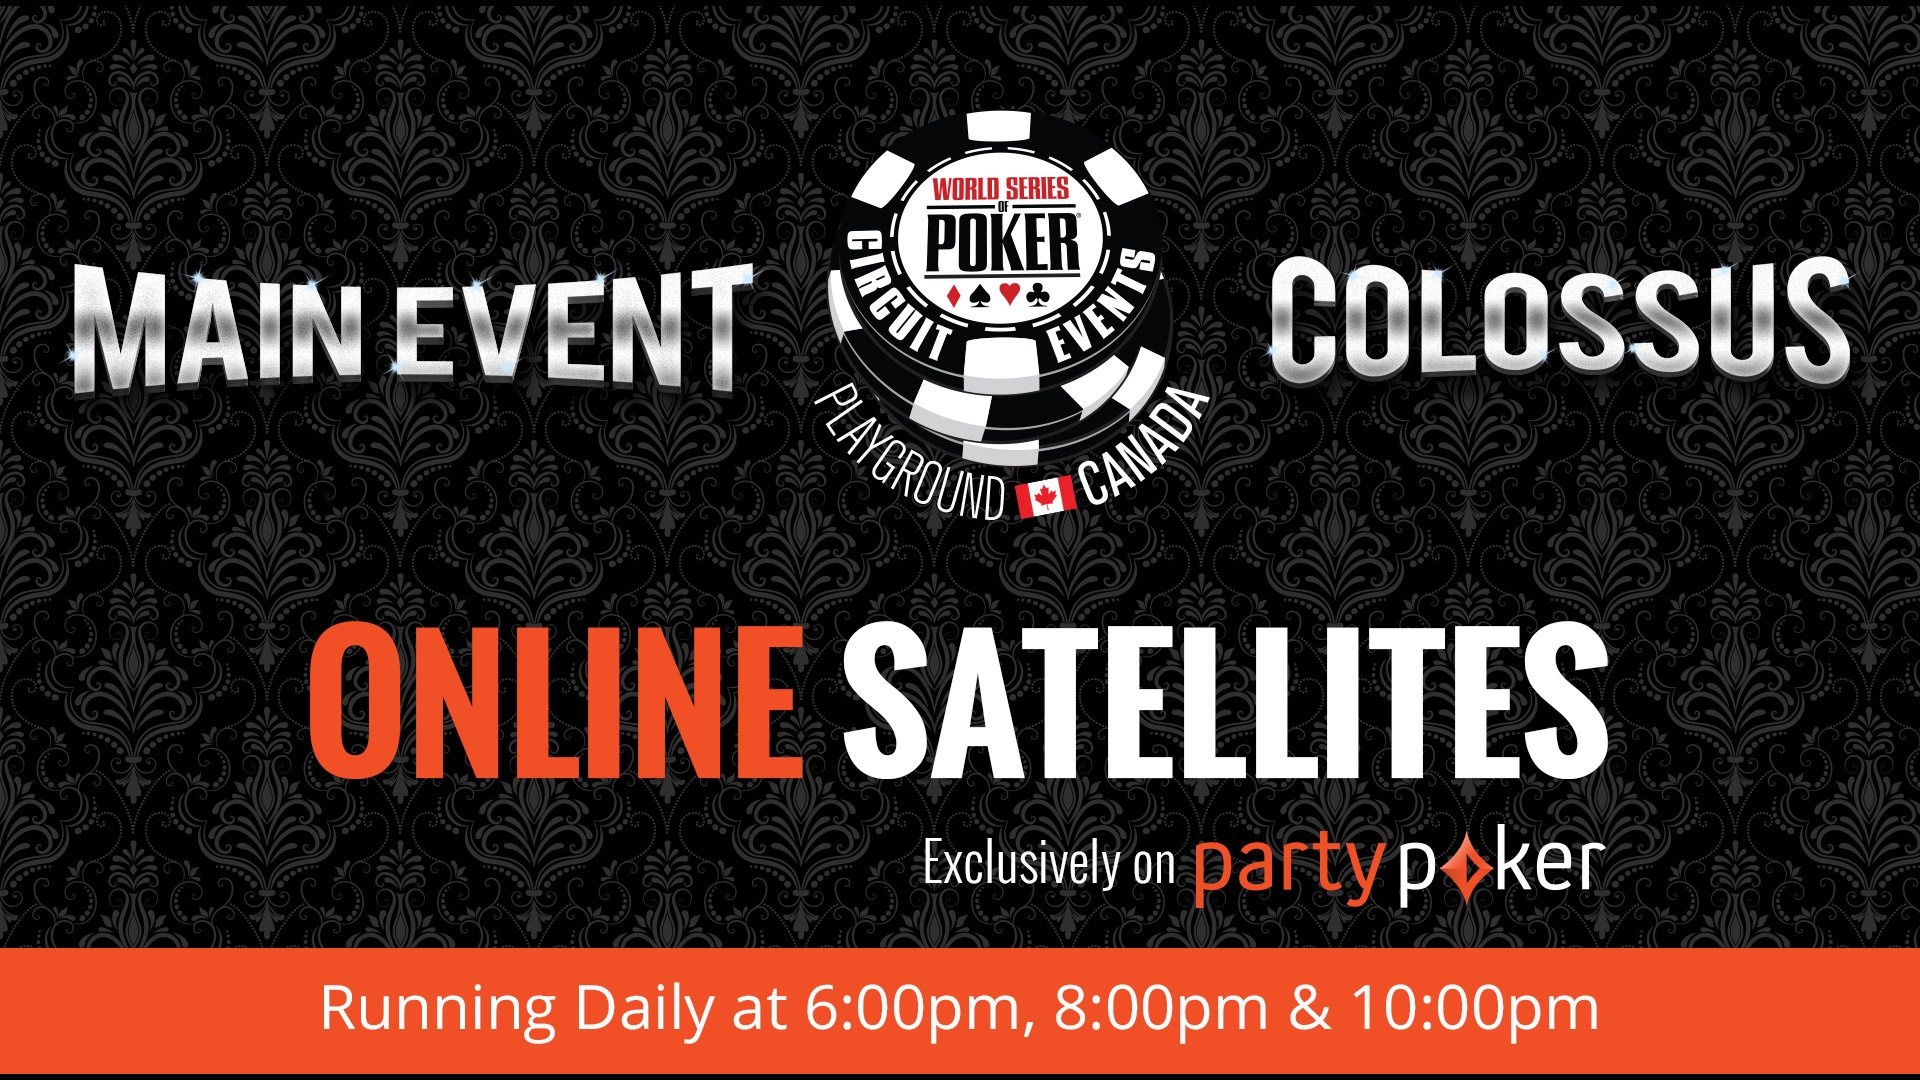 Qualify for the WSOP-C Colossus and Main Event on partypoker